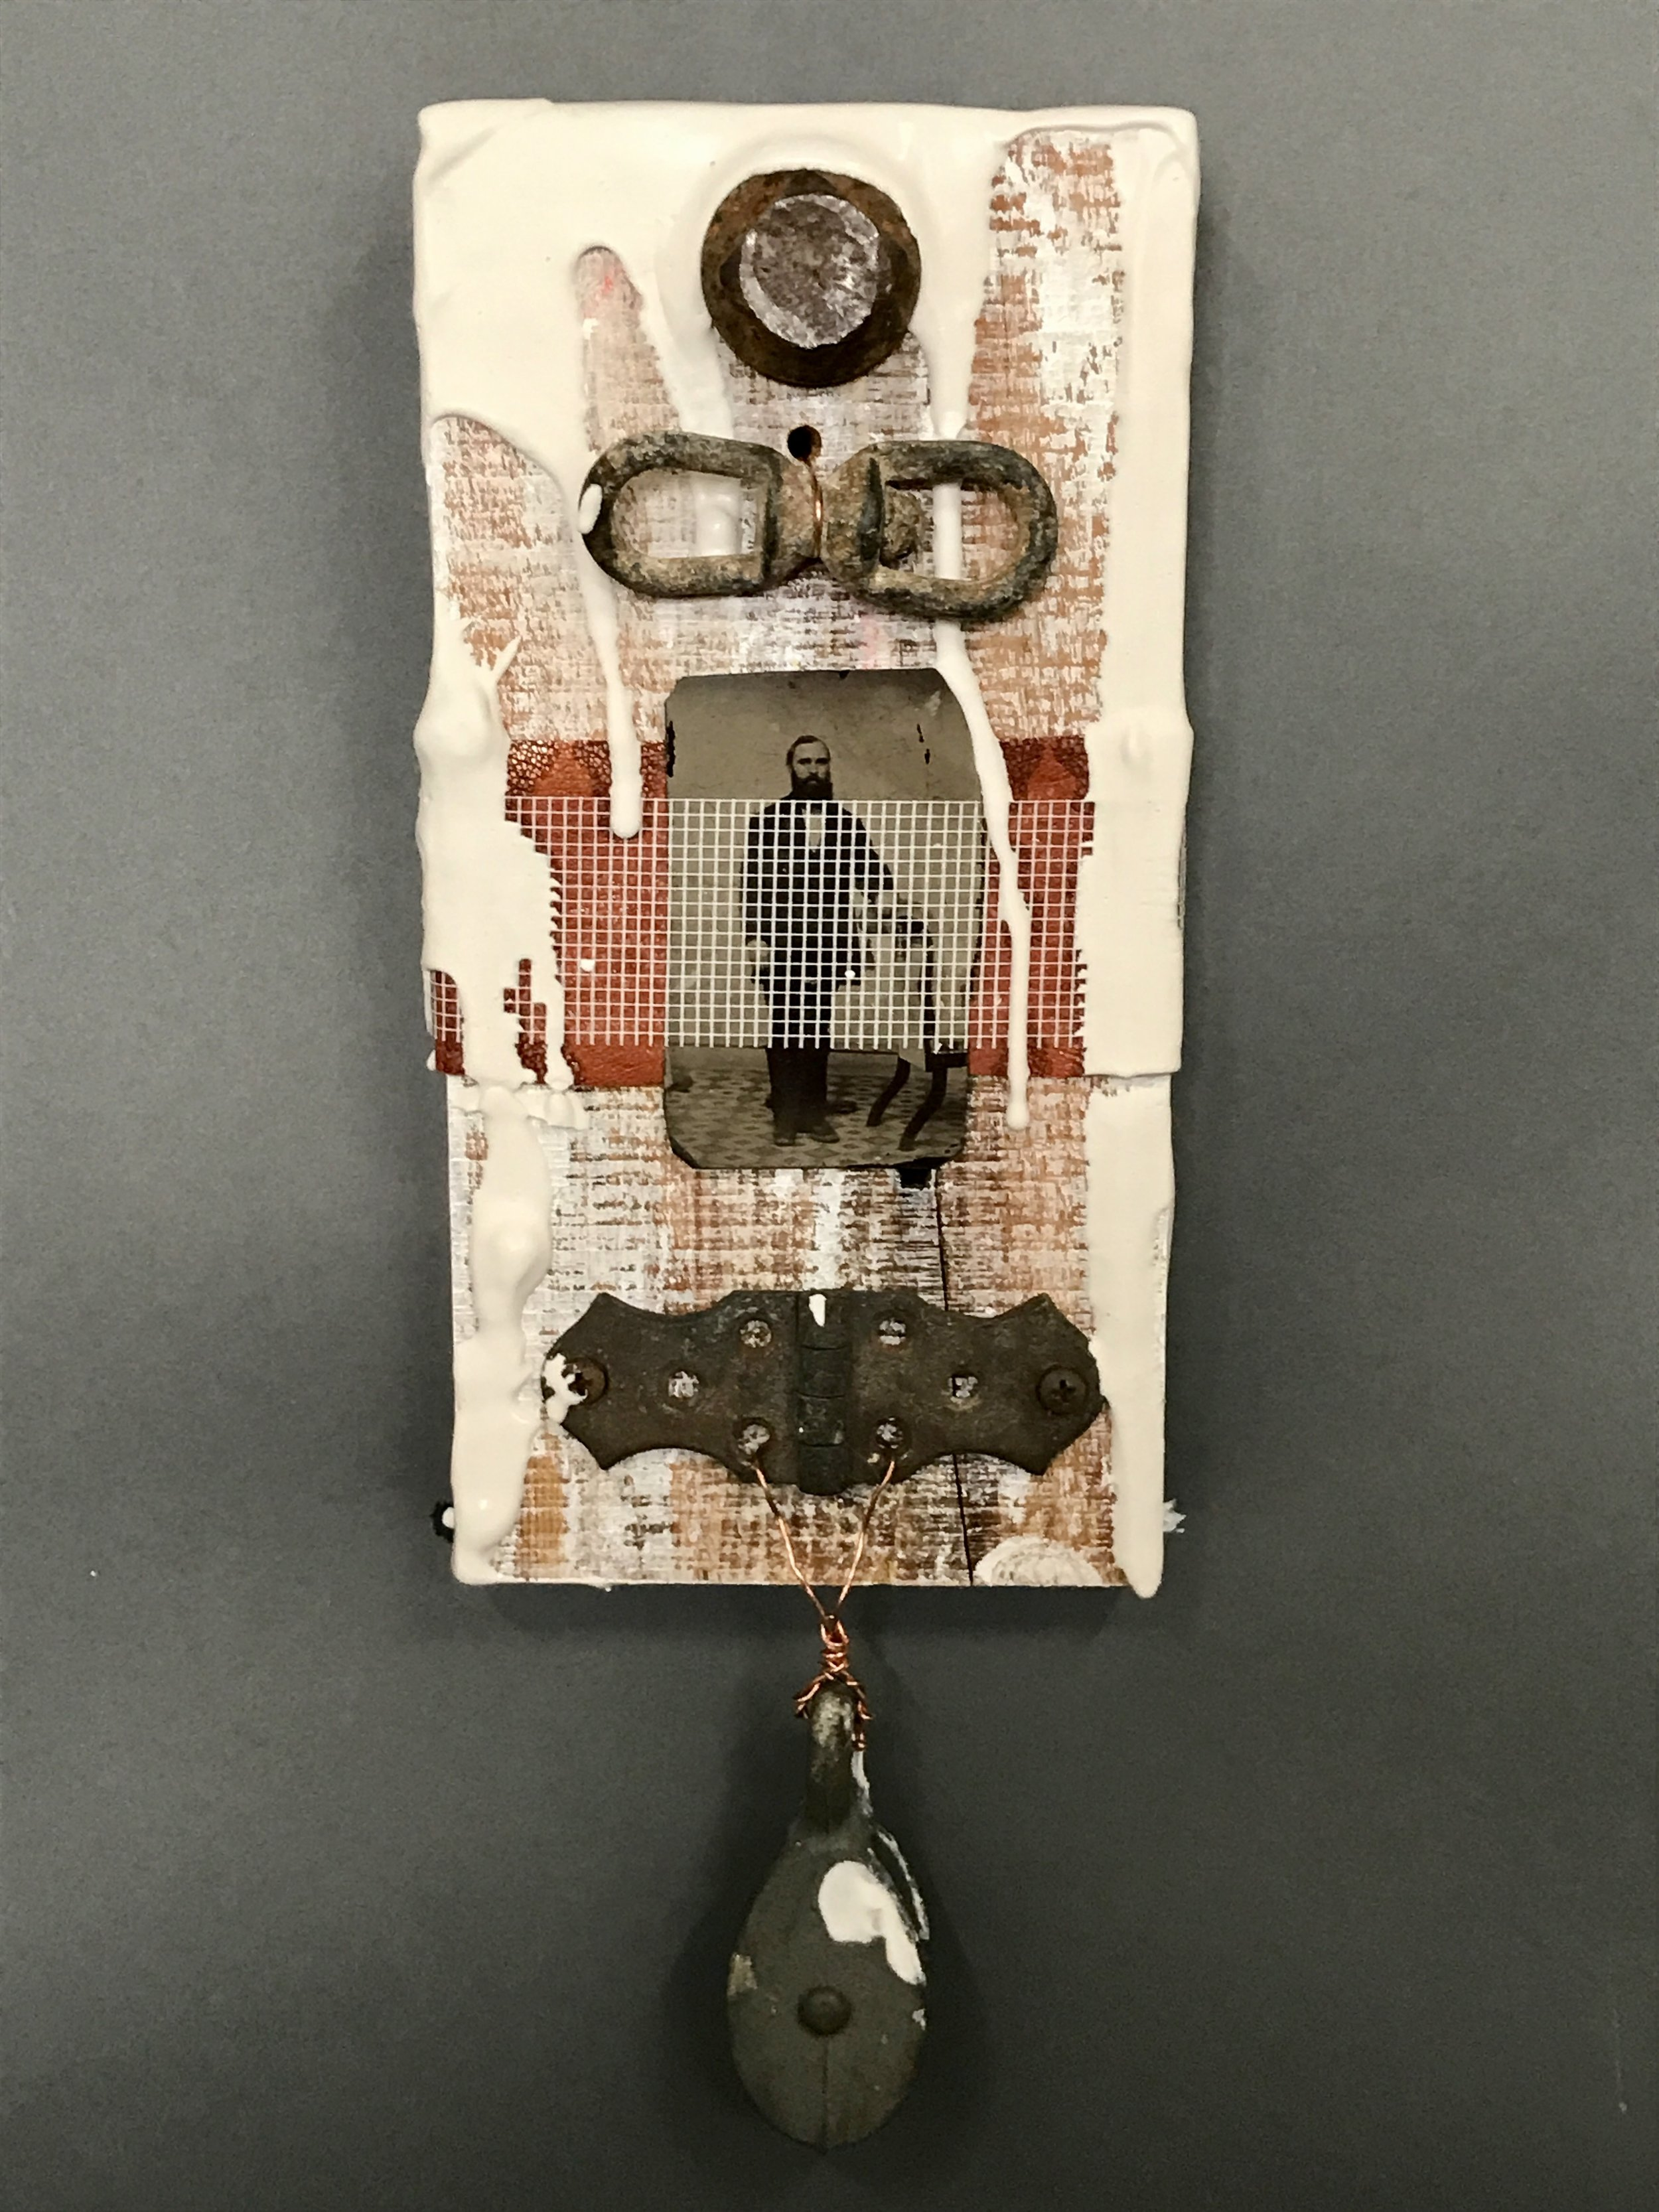 Henry  Mixed media 15.25 x5.75 in/ 38.7 x 14.6 cm